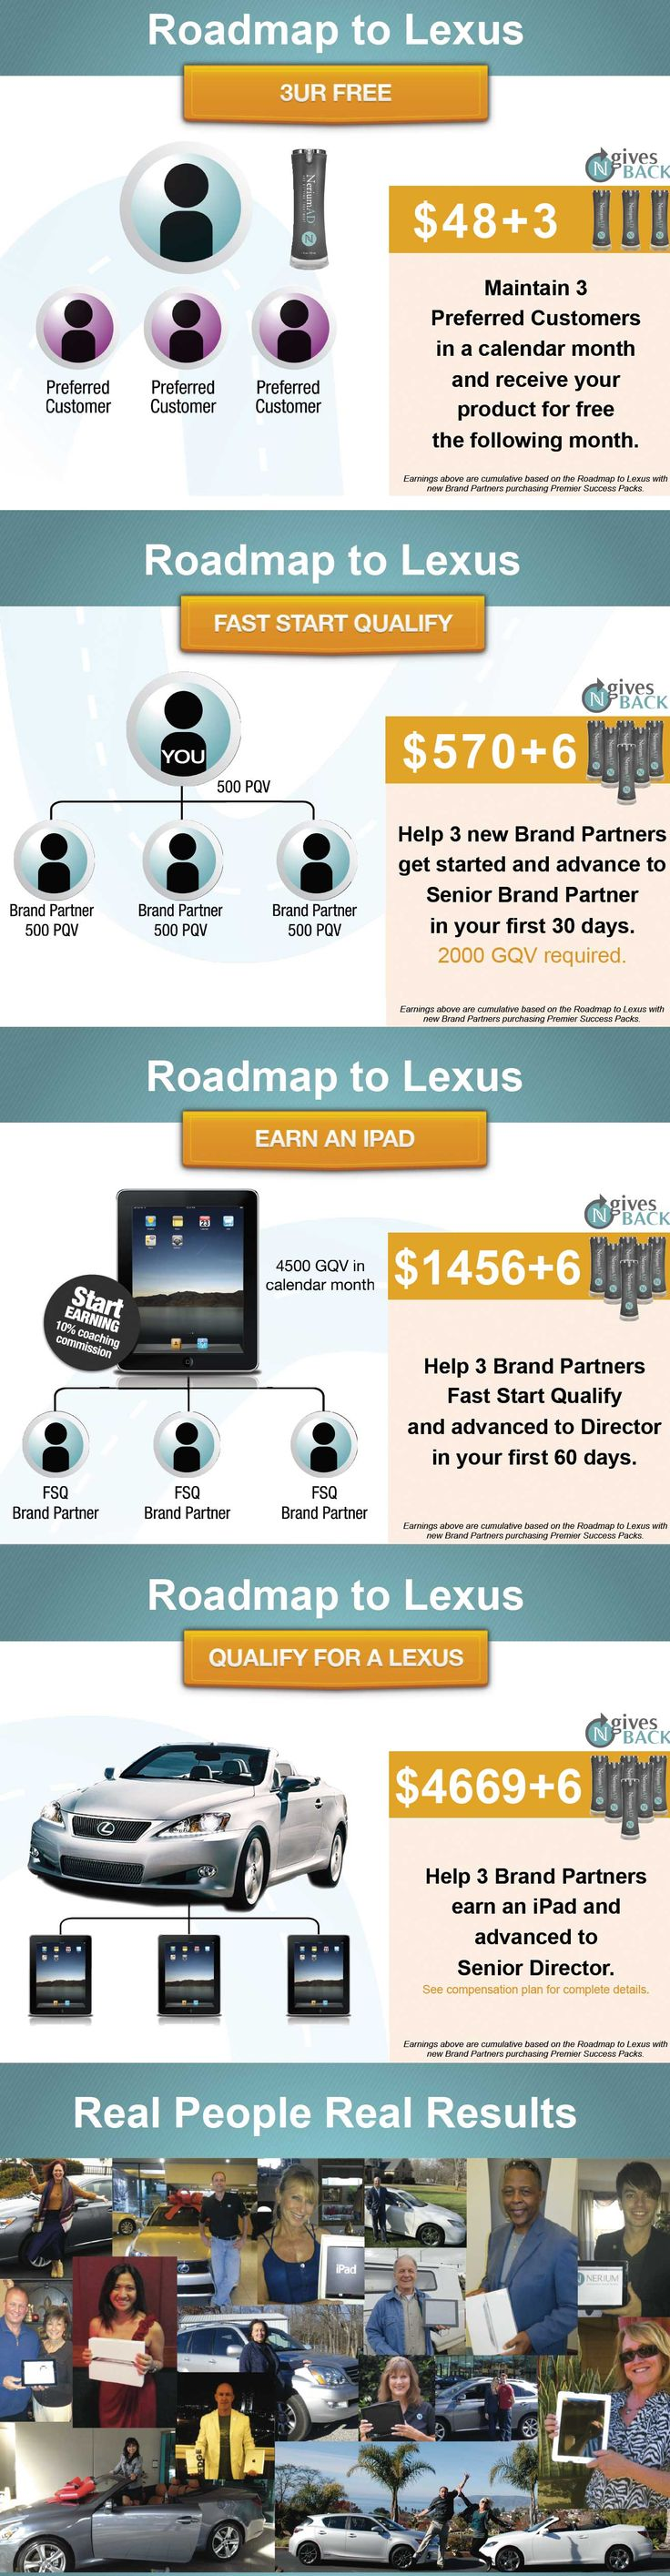 Nerium's Road Map to Lexus. Steps to get a free iPad and Lexus What is Nerium Skin Care? 24 hours of patented antioxidant skin protection. REAL Science, REAL Results! Age-defying treatment- fine lines wrinkles, skin texture, pores, discoloration, aging and sun damaged skin-30 day money back guarantee.